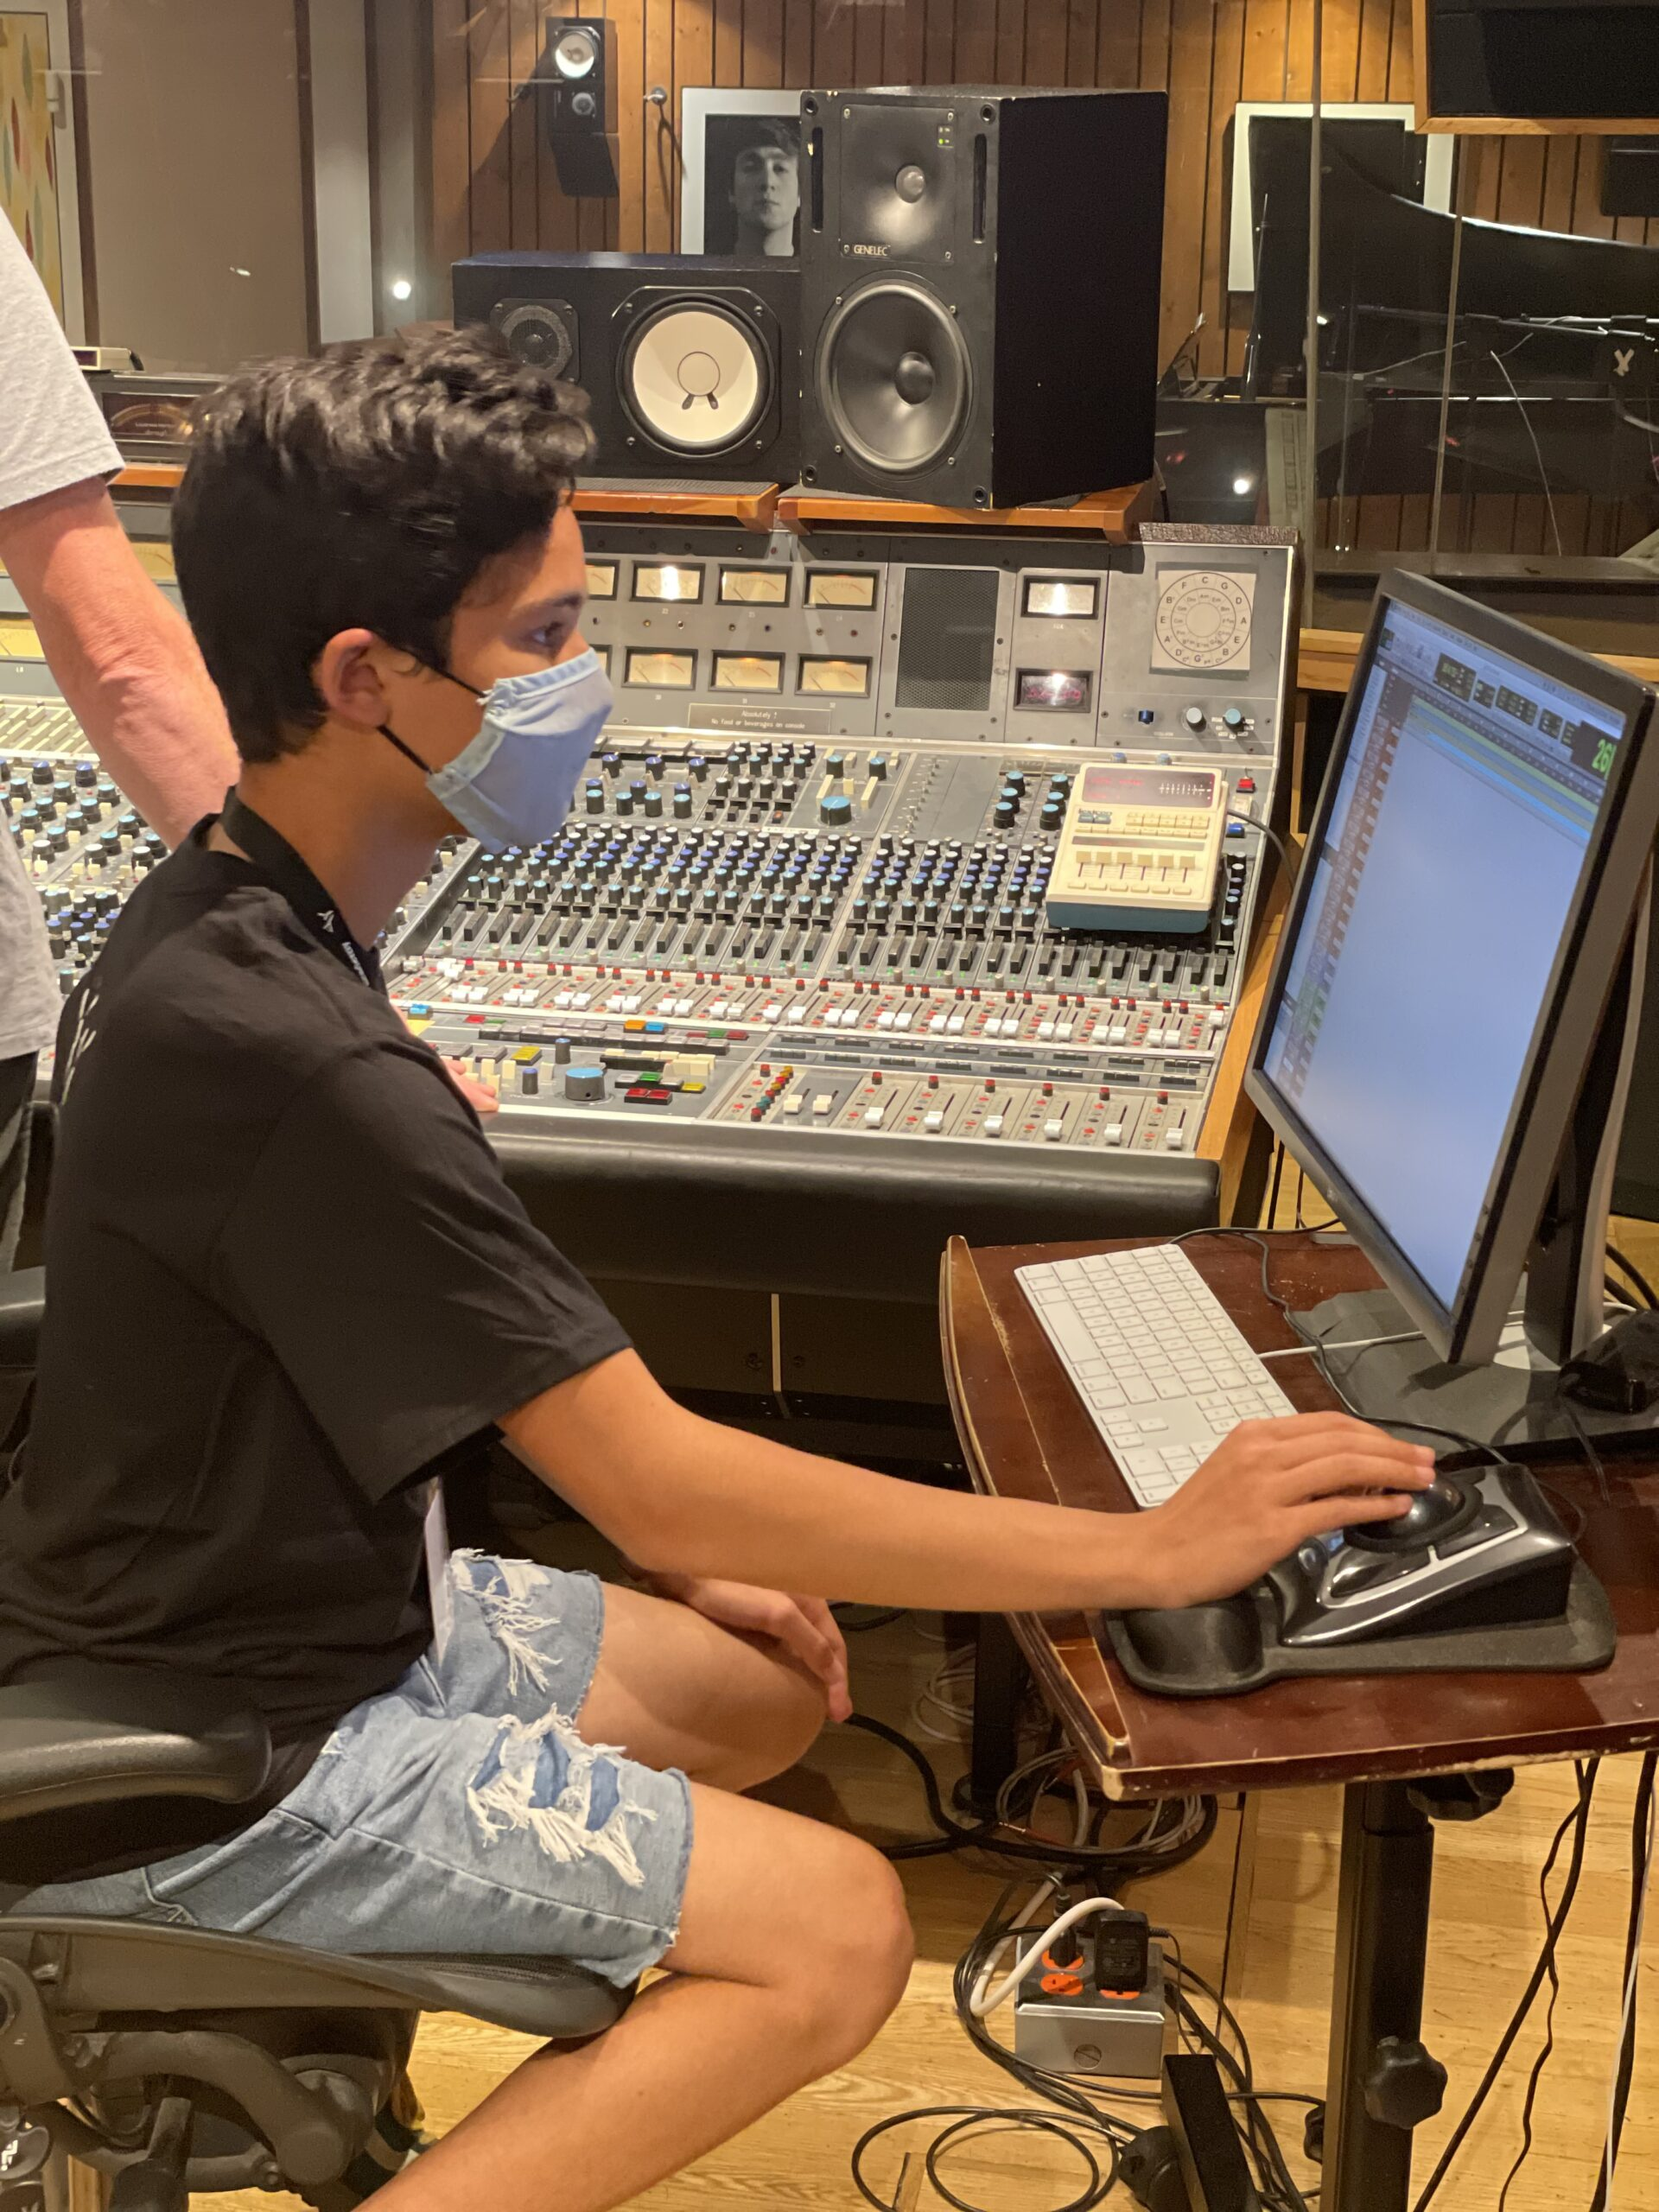 Camper learning ProTools